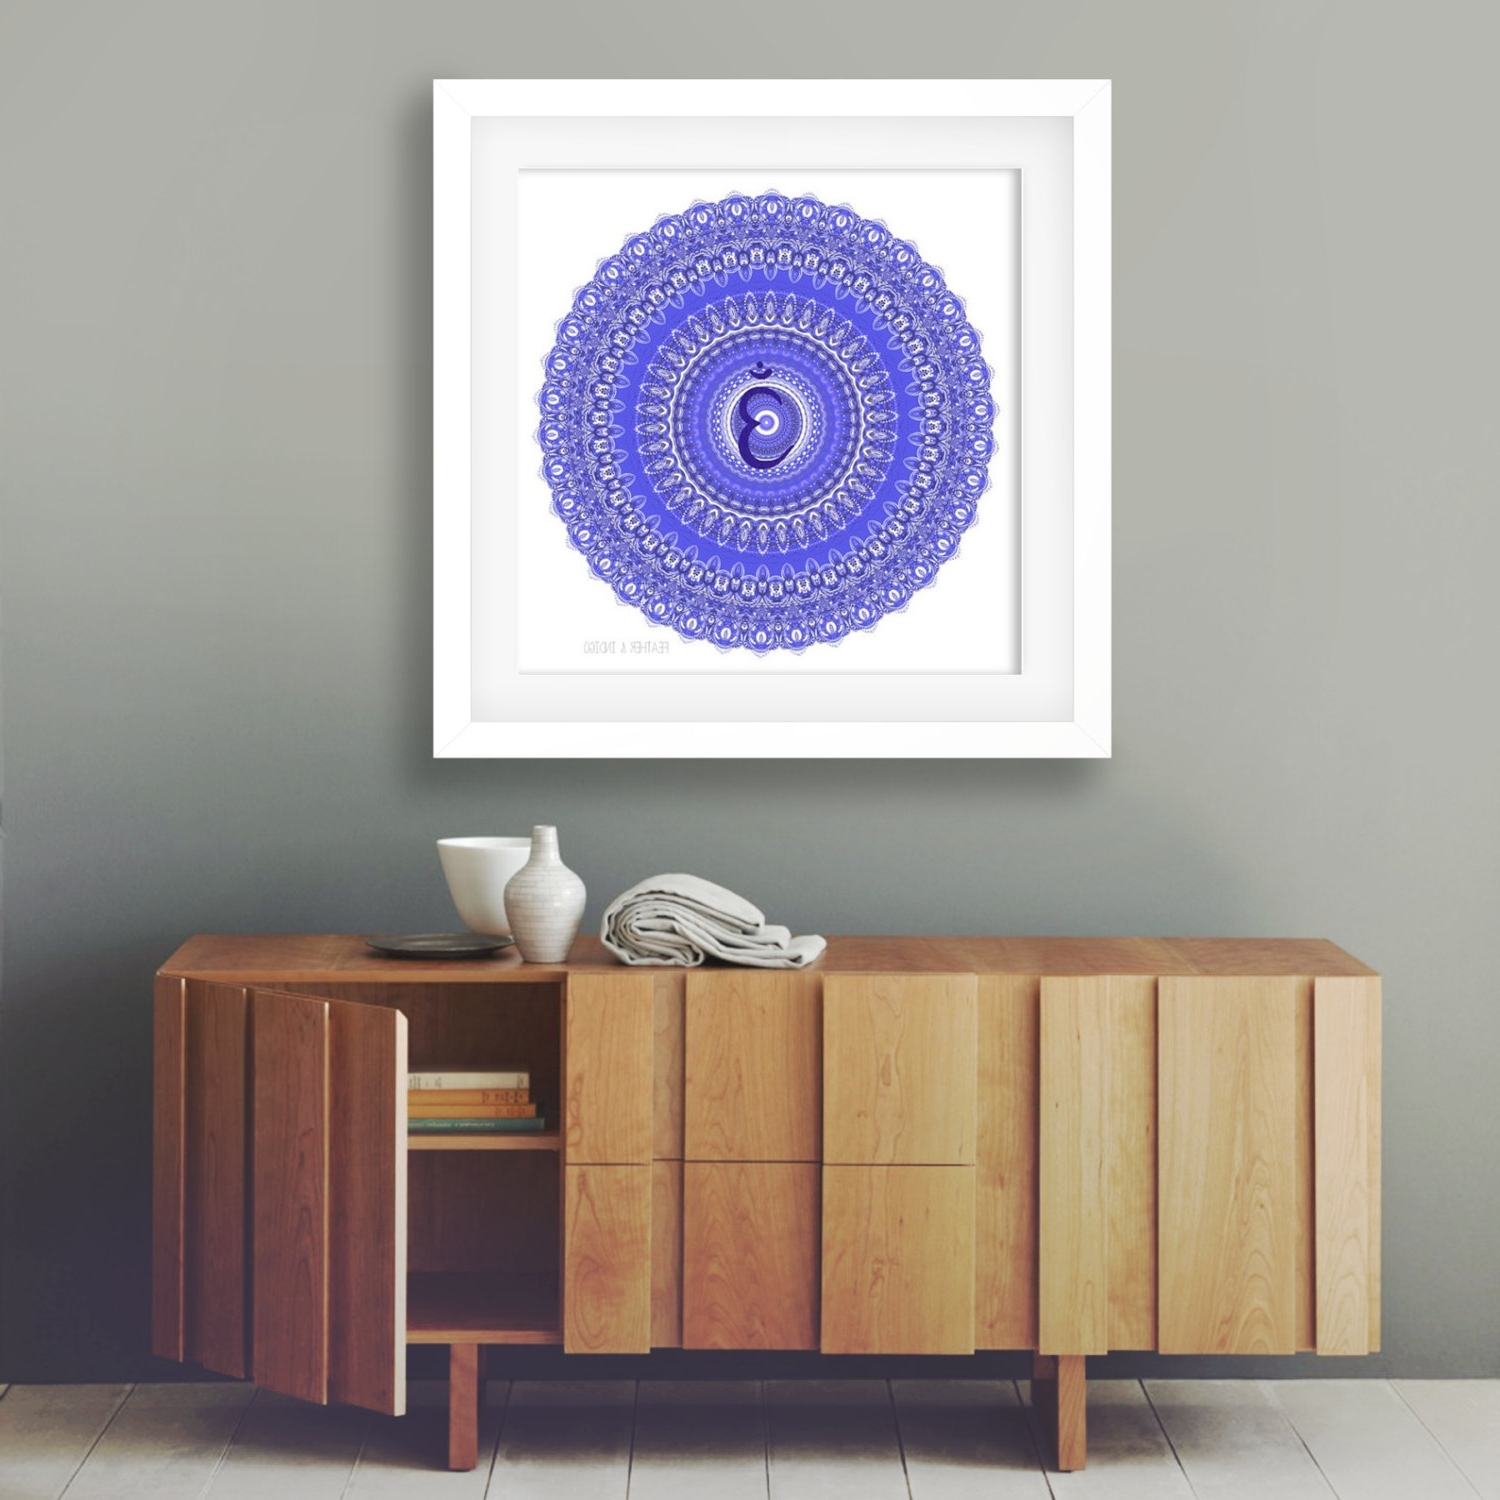 Latest Popular Items For Mandala Wall Decor On Etsy Third Eye Chakra Art With Regard To Etsy Wall Accents (View 8 of 15)